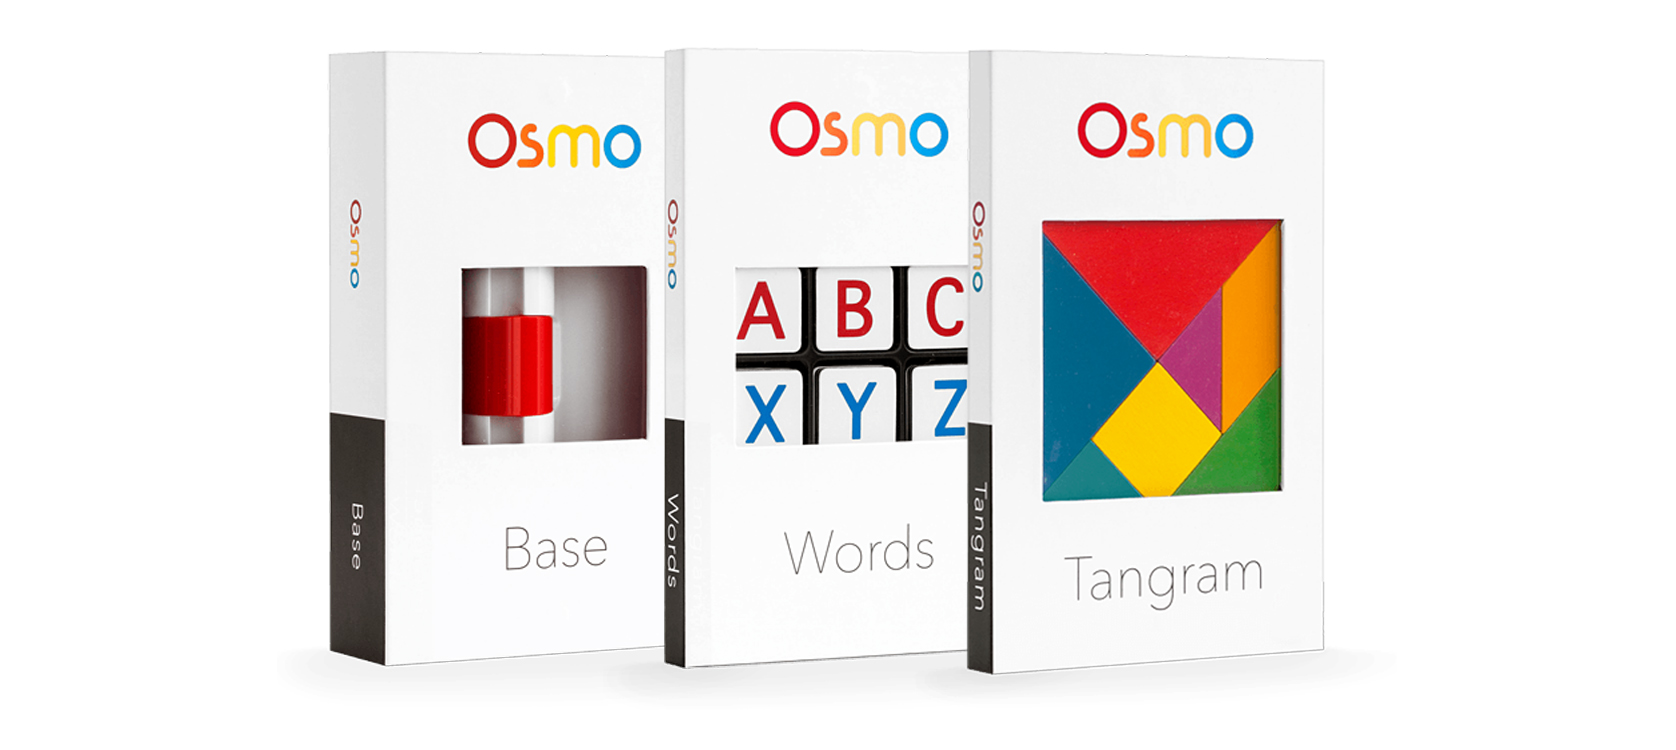 osmo-starter-kit-boxes